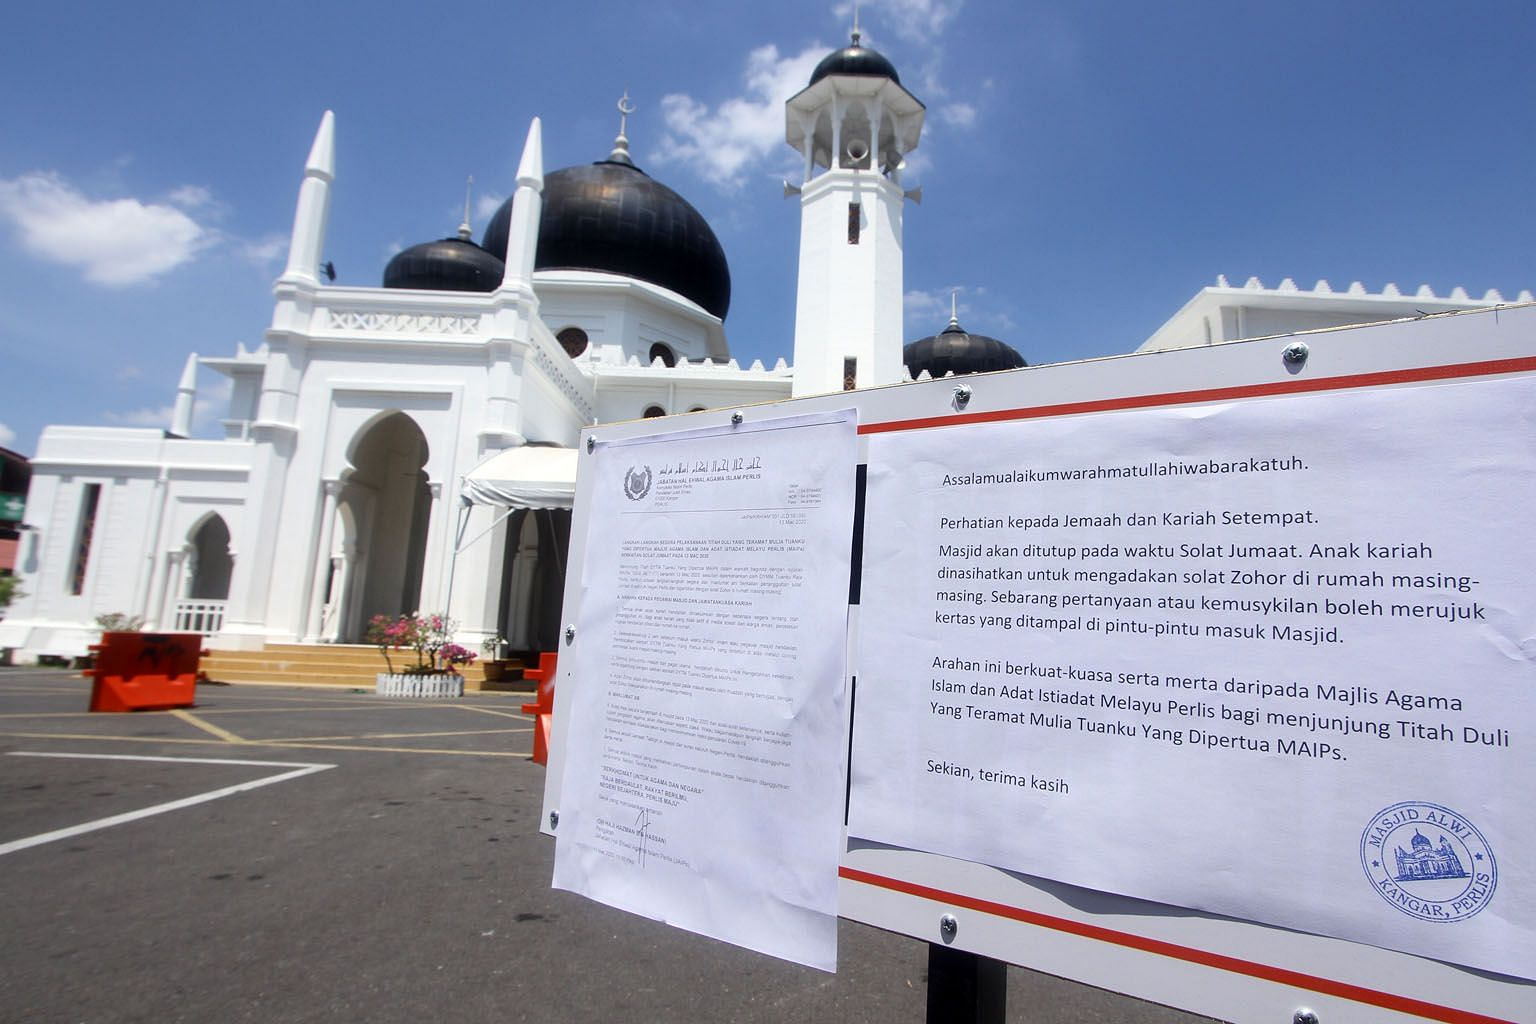 A notice on the cancellation of Friday prayers at the Alwi Mosque in Kangar, Perlis, yesterday. Malaysian Prime Minister Muhyiddin Yassin said yesterday that all big gatherings such as international meetings, sporting and social events will be cancel